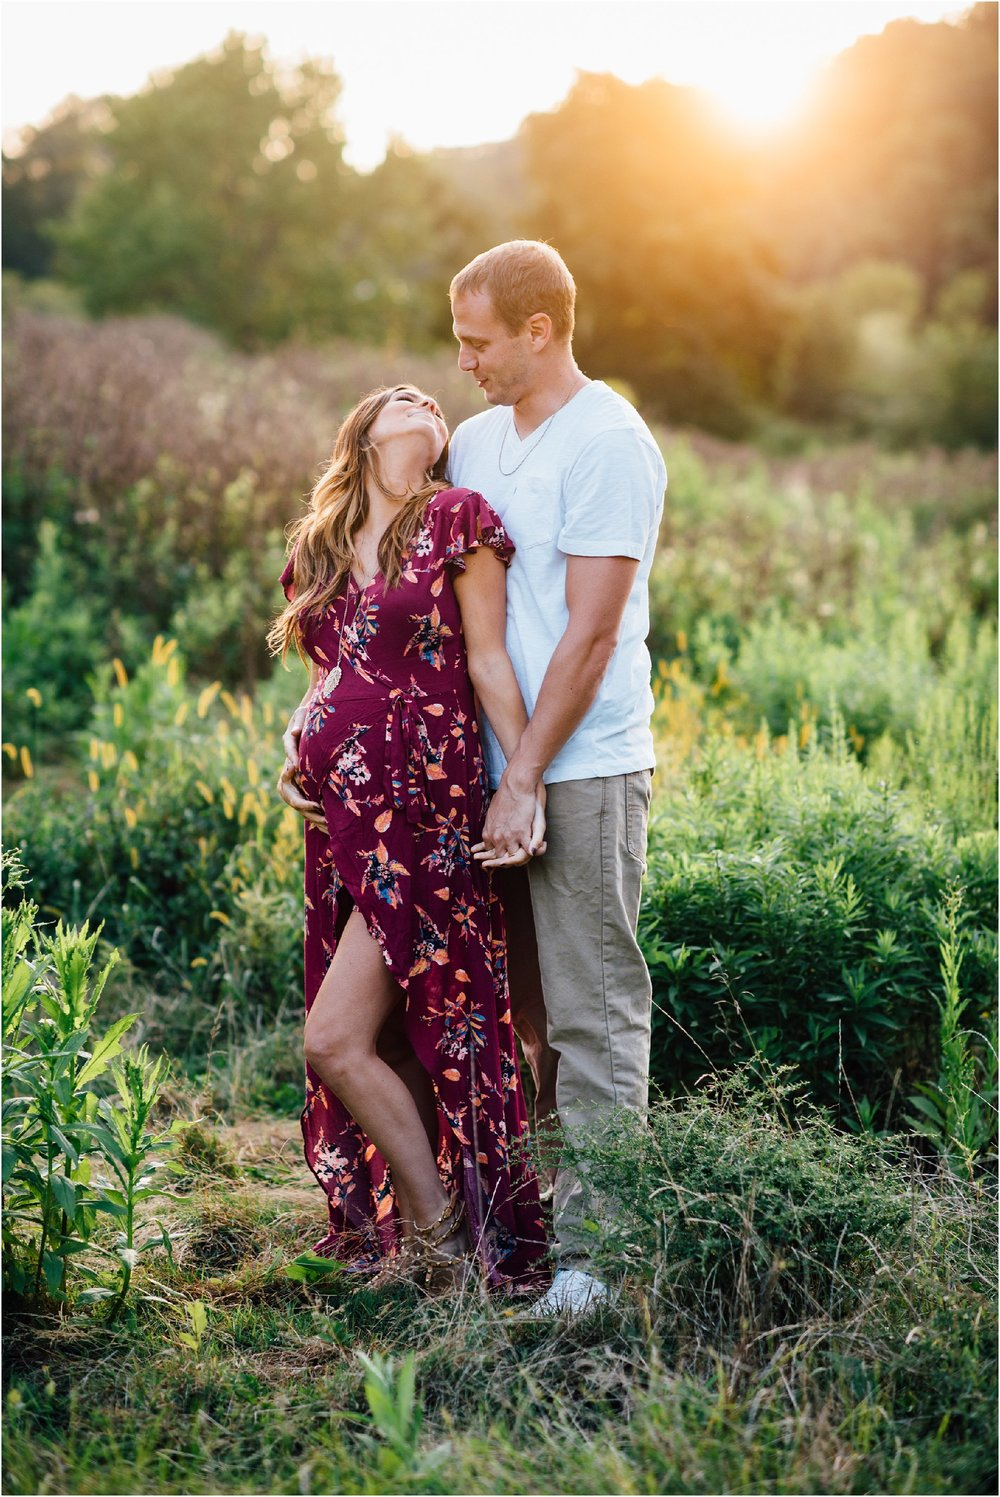 Pittsburgh Rachel Rossetti Family Maternity Portrait Photography_0212.jpg